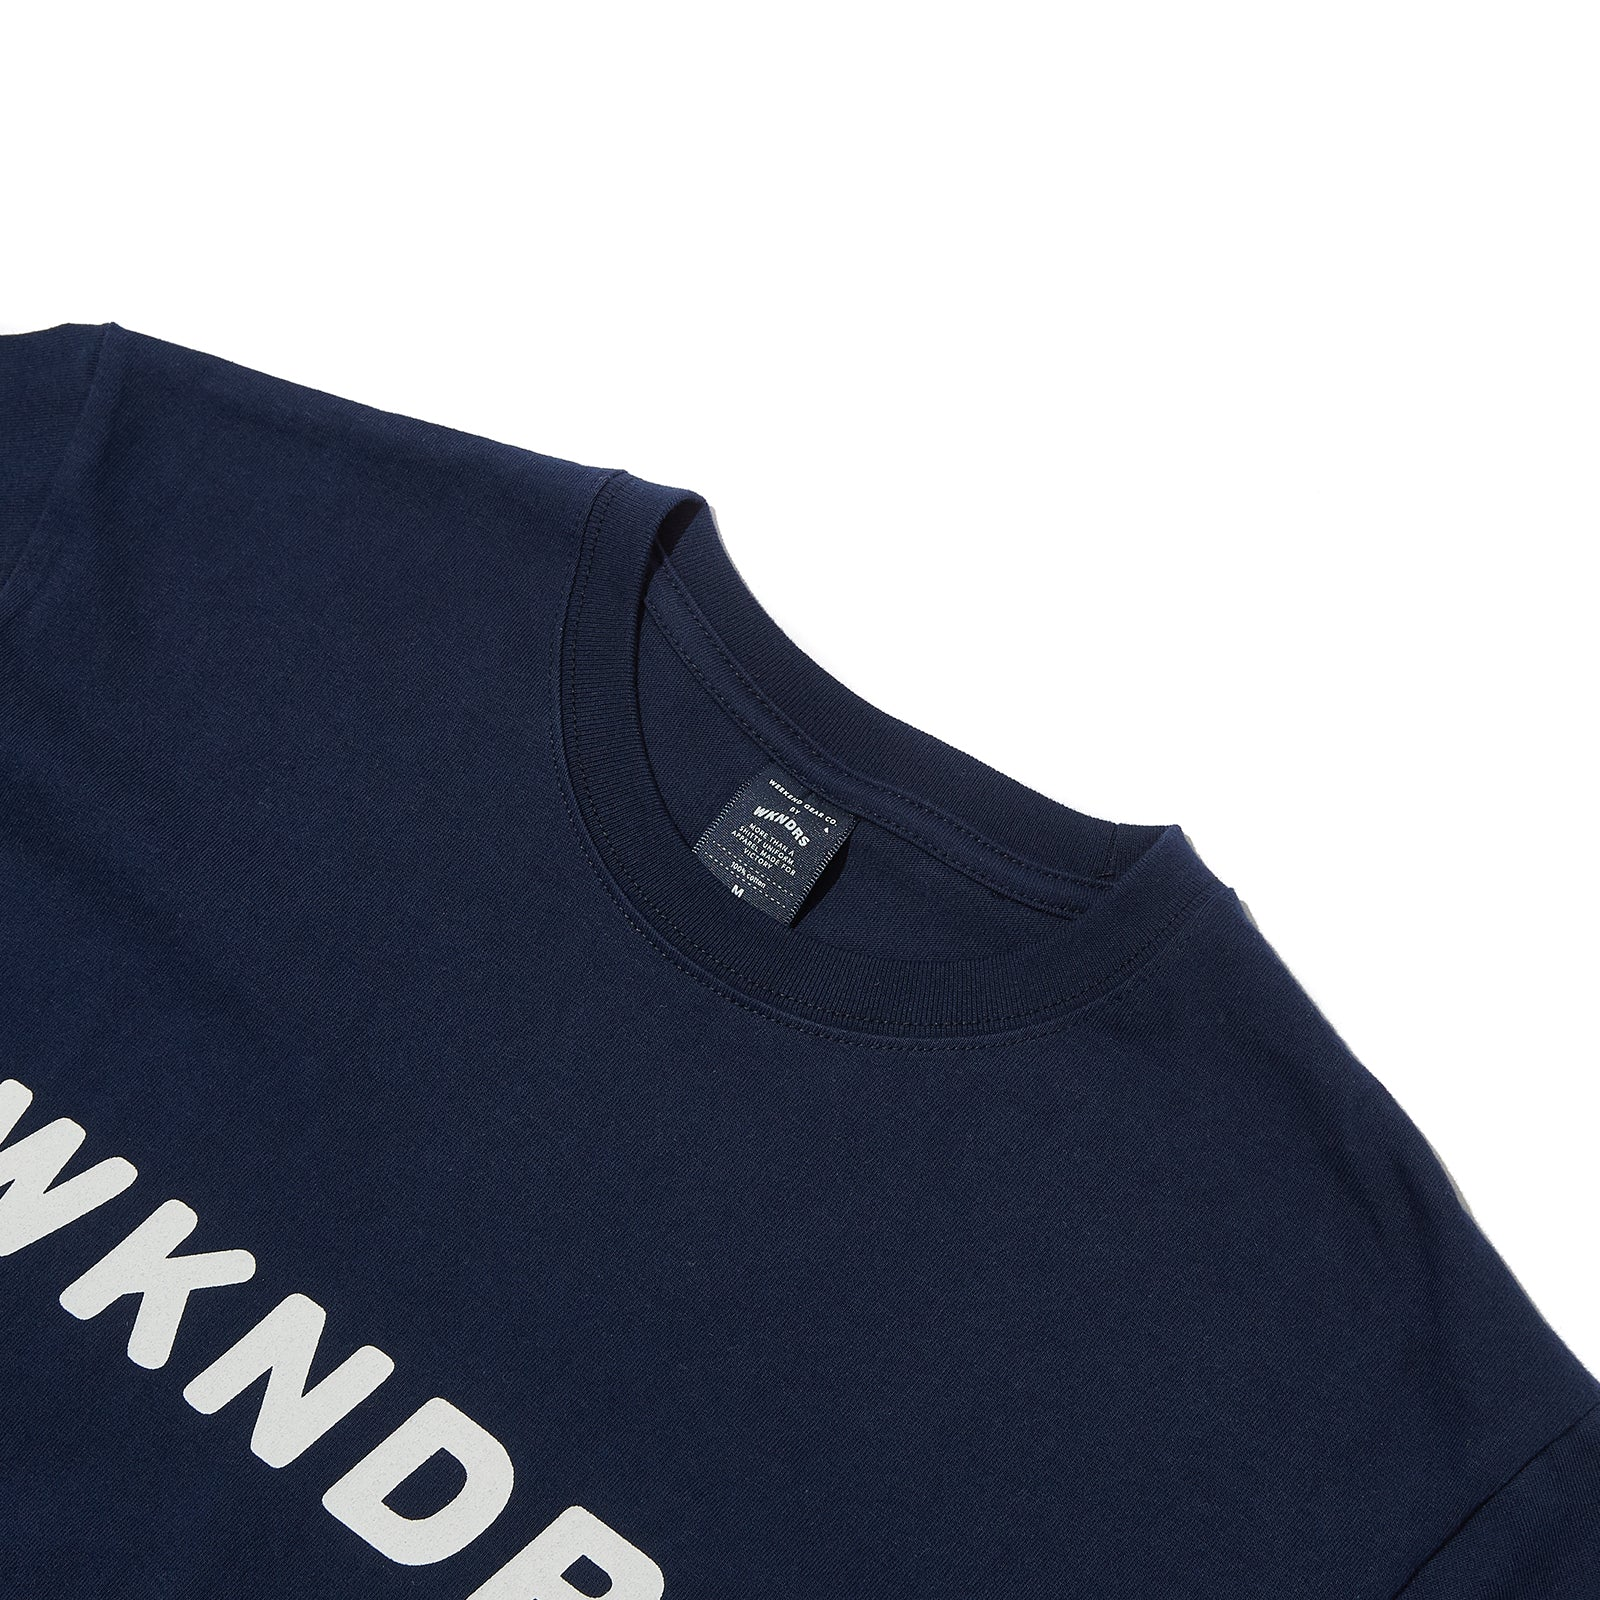 BASIC LOGO SS T-SHIRT (NAVY)